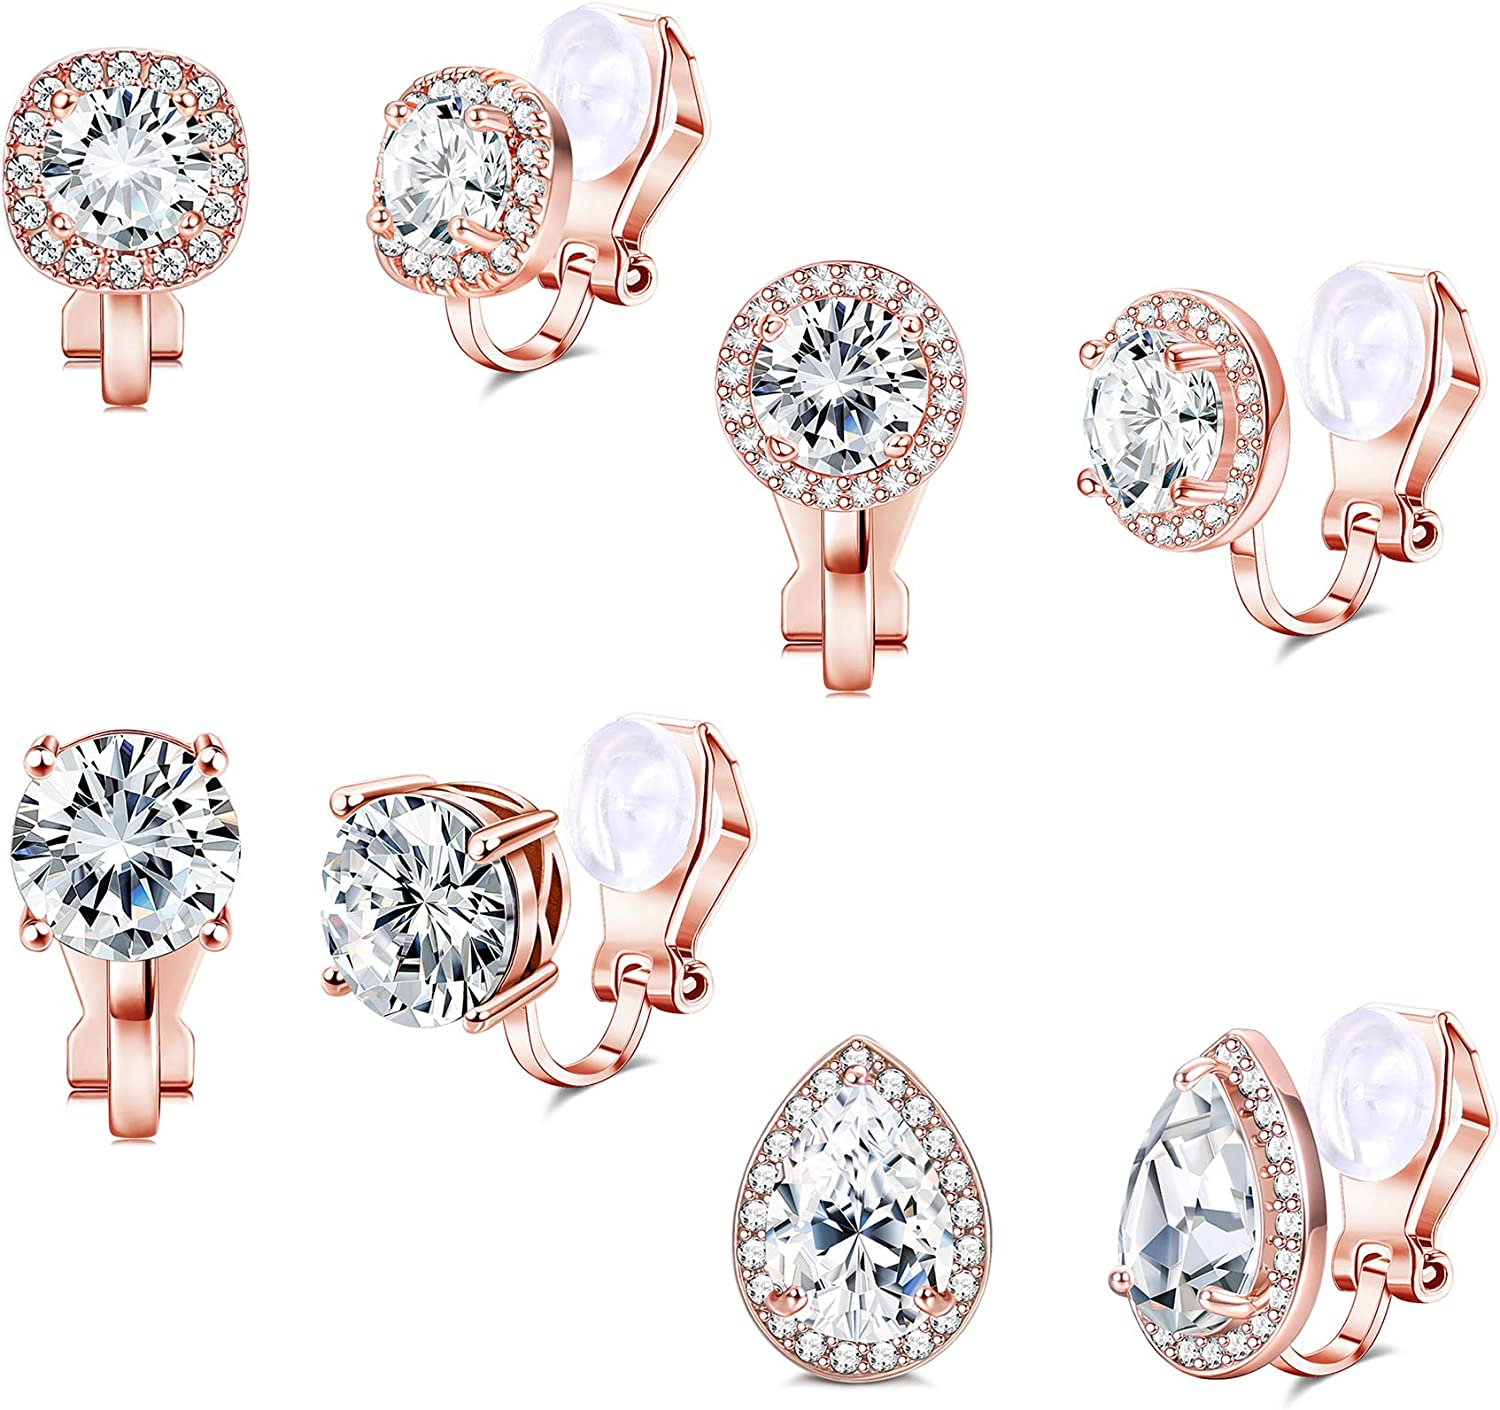 SAILIMUE 4 Pairs Clip On Earrings for Women Cubic Zirconia Non Pierced Earrings Round Square Teardrop Clip Earrings Silver-Tone Rosegold-tone